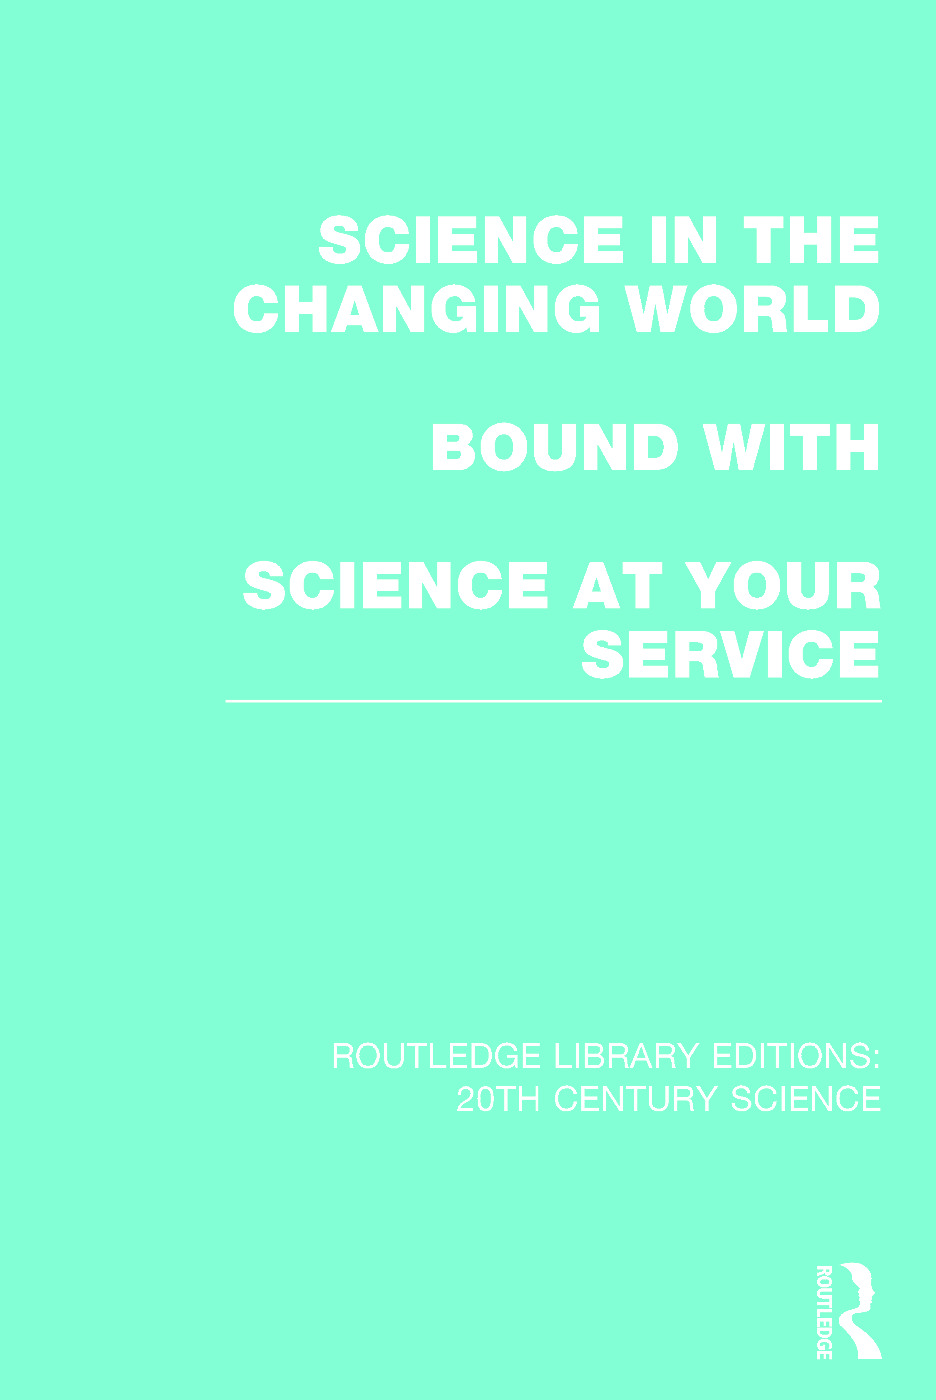 Routledge Library Editions: 20th Century Science